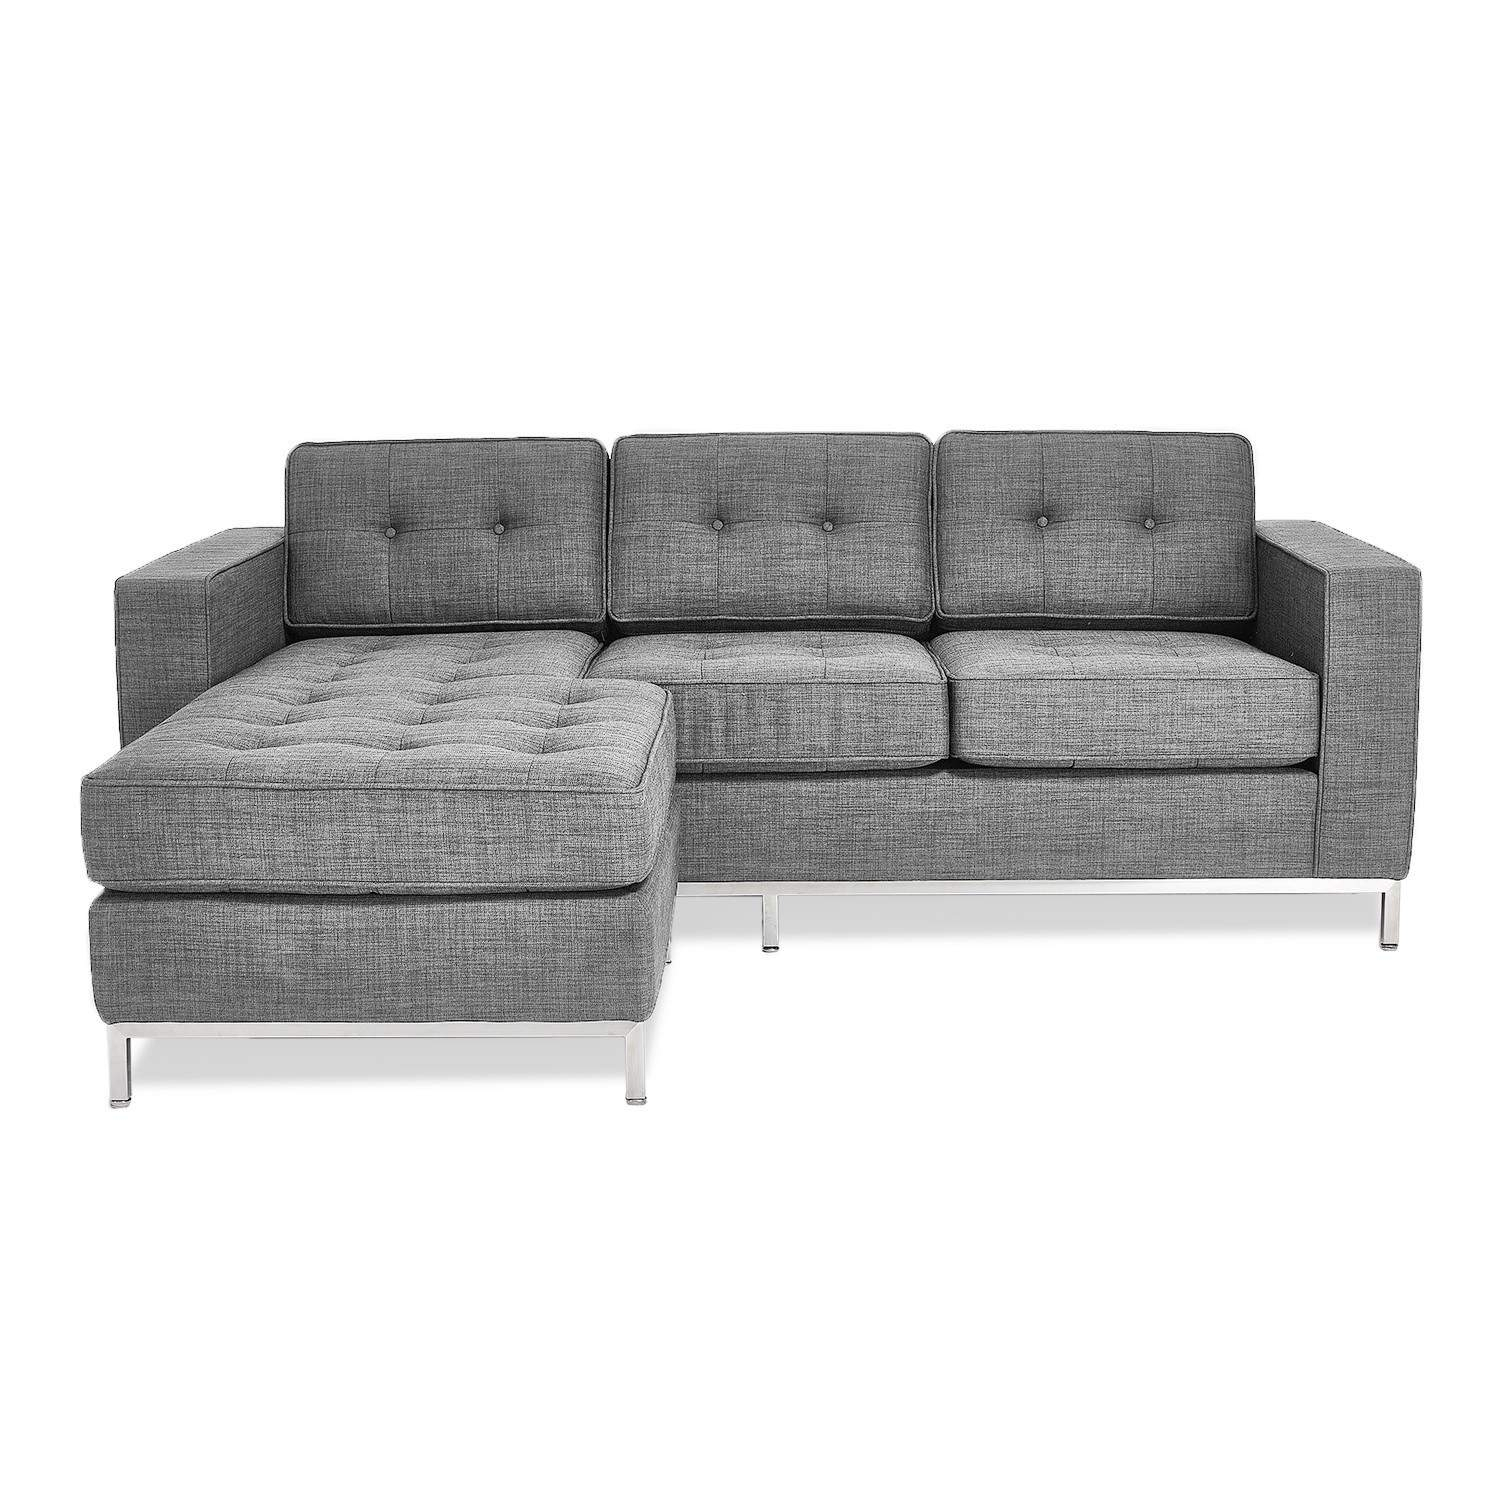 Collection Gus Modern Jane Loft Bi Sectional Sofa - Mediasupload with regard to Jane Bi Sectional Sofas (Image 2 of 10)